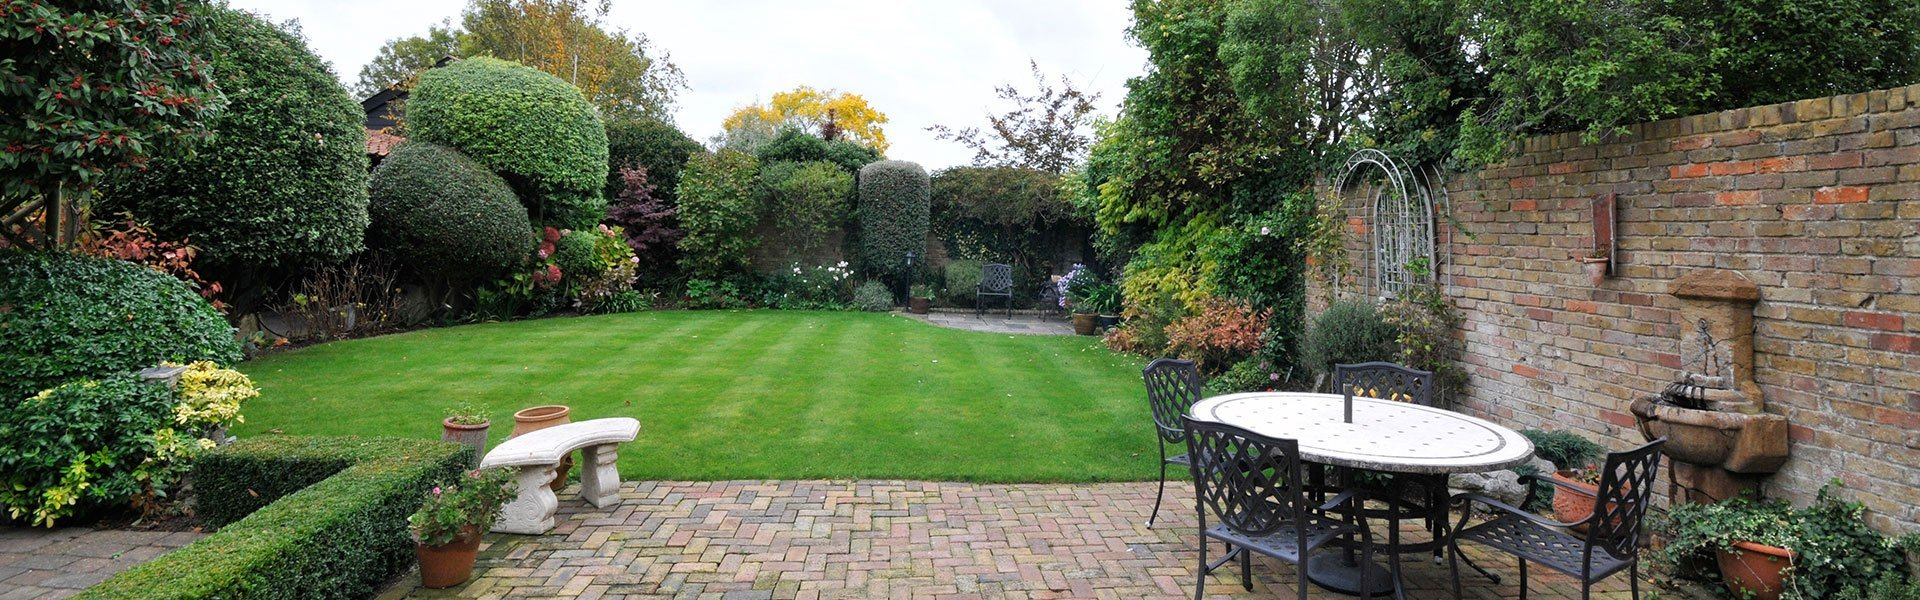 Are You Looking For Garden Designers In Mold?